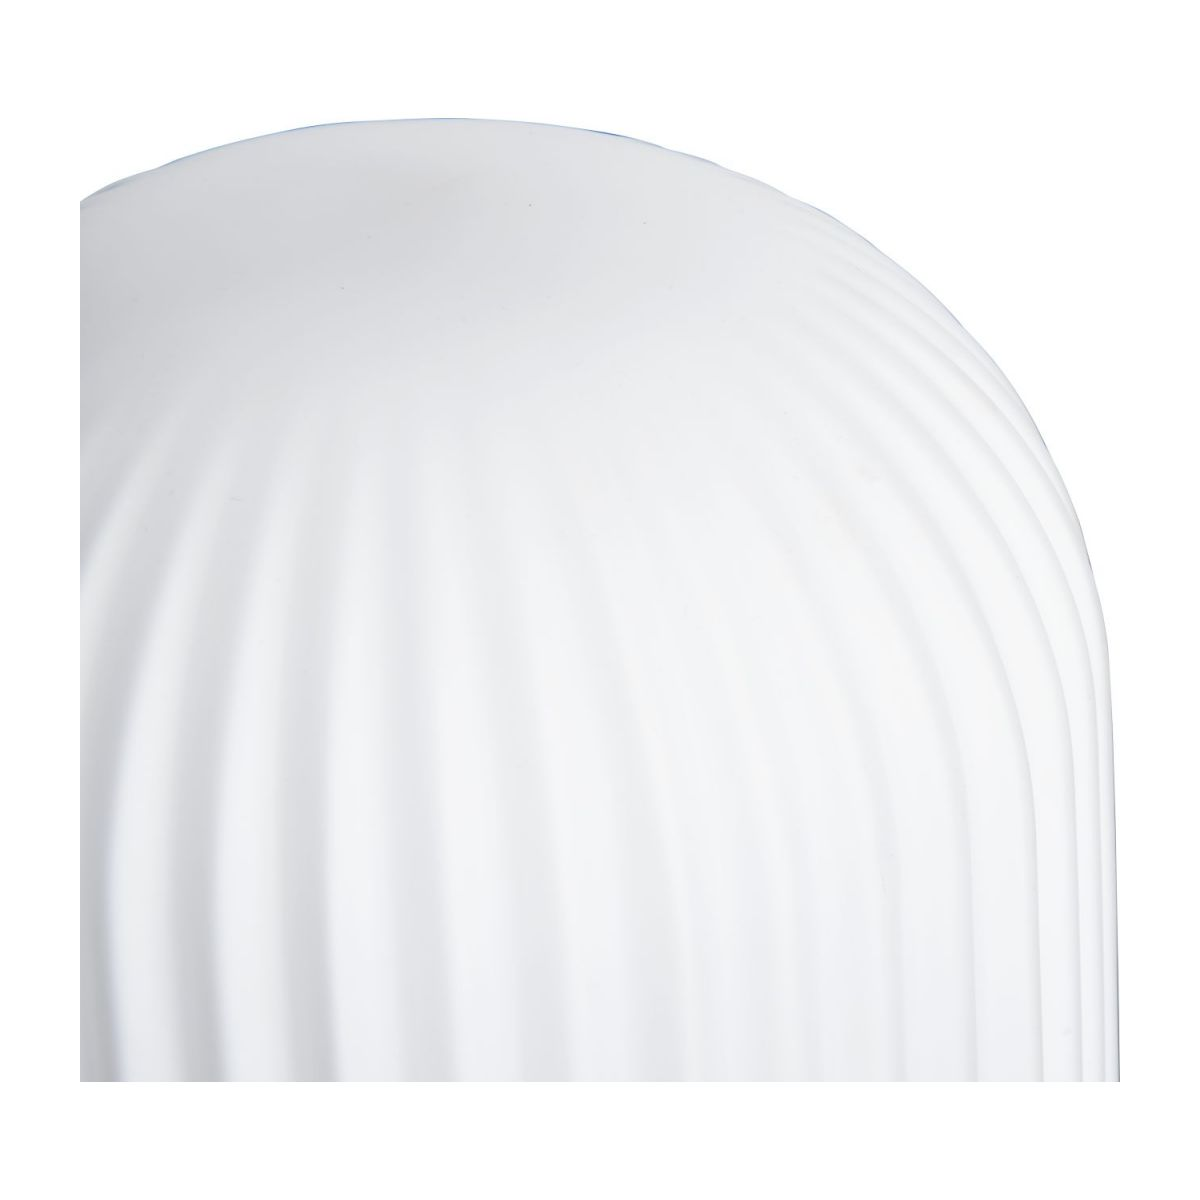 Lampe de table 32cm en verre blanc n°2